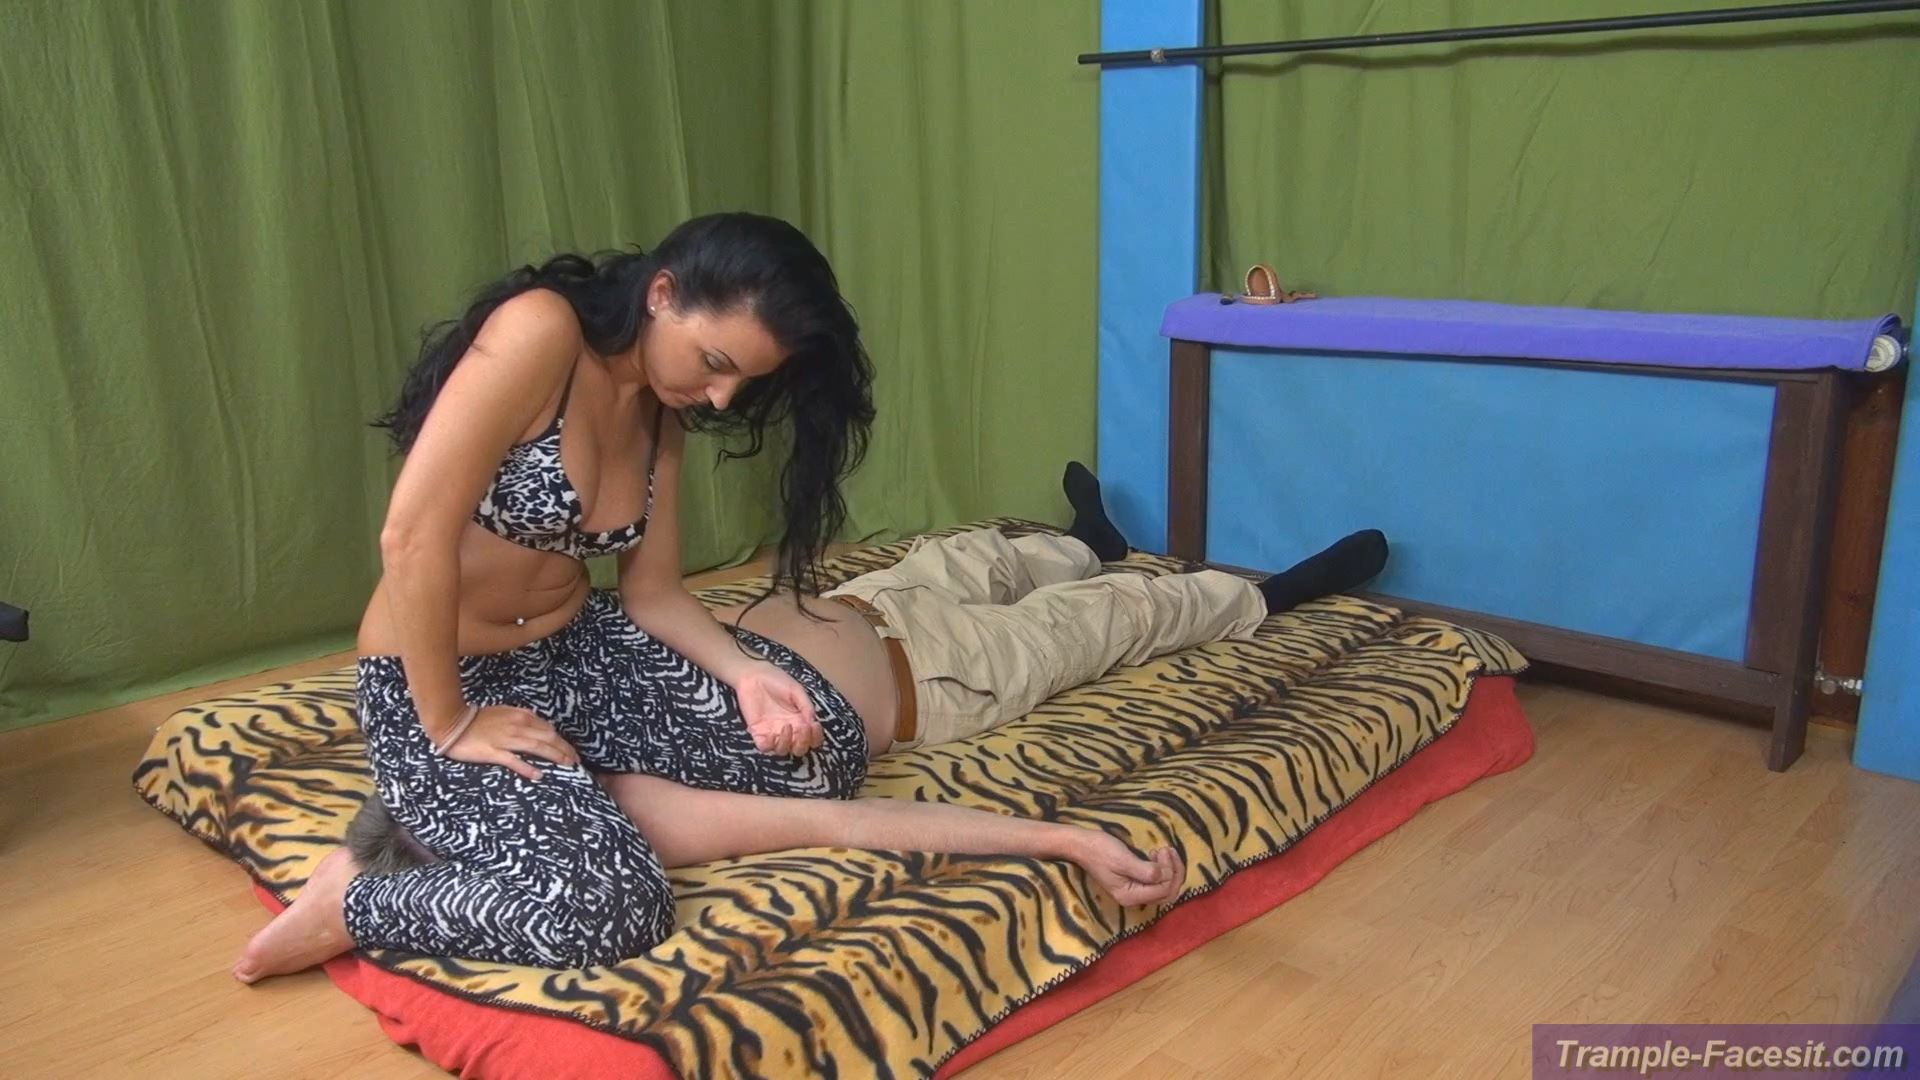 Isabella In Scene: School-girl-pin and bodyweight game - FACESITTING-PARADISE - FULL HD/1080p/MP4